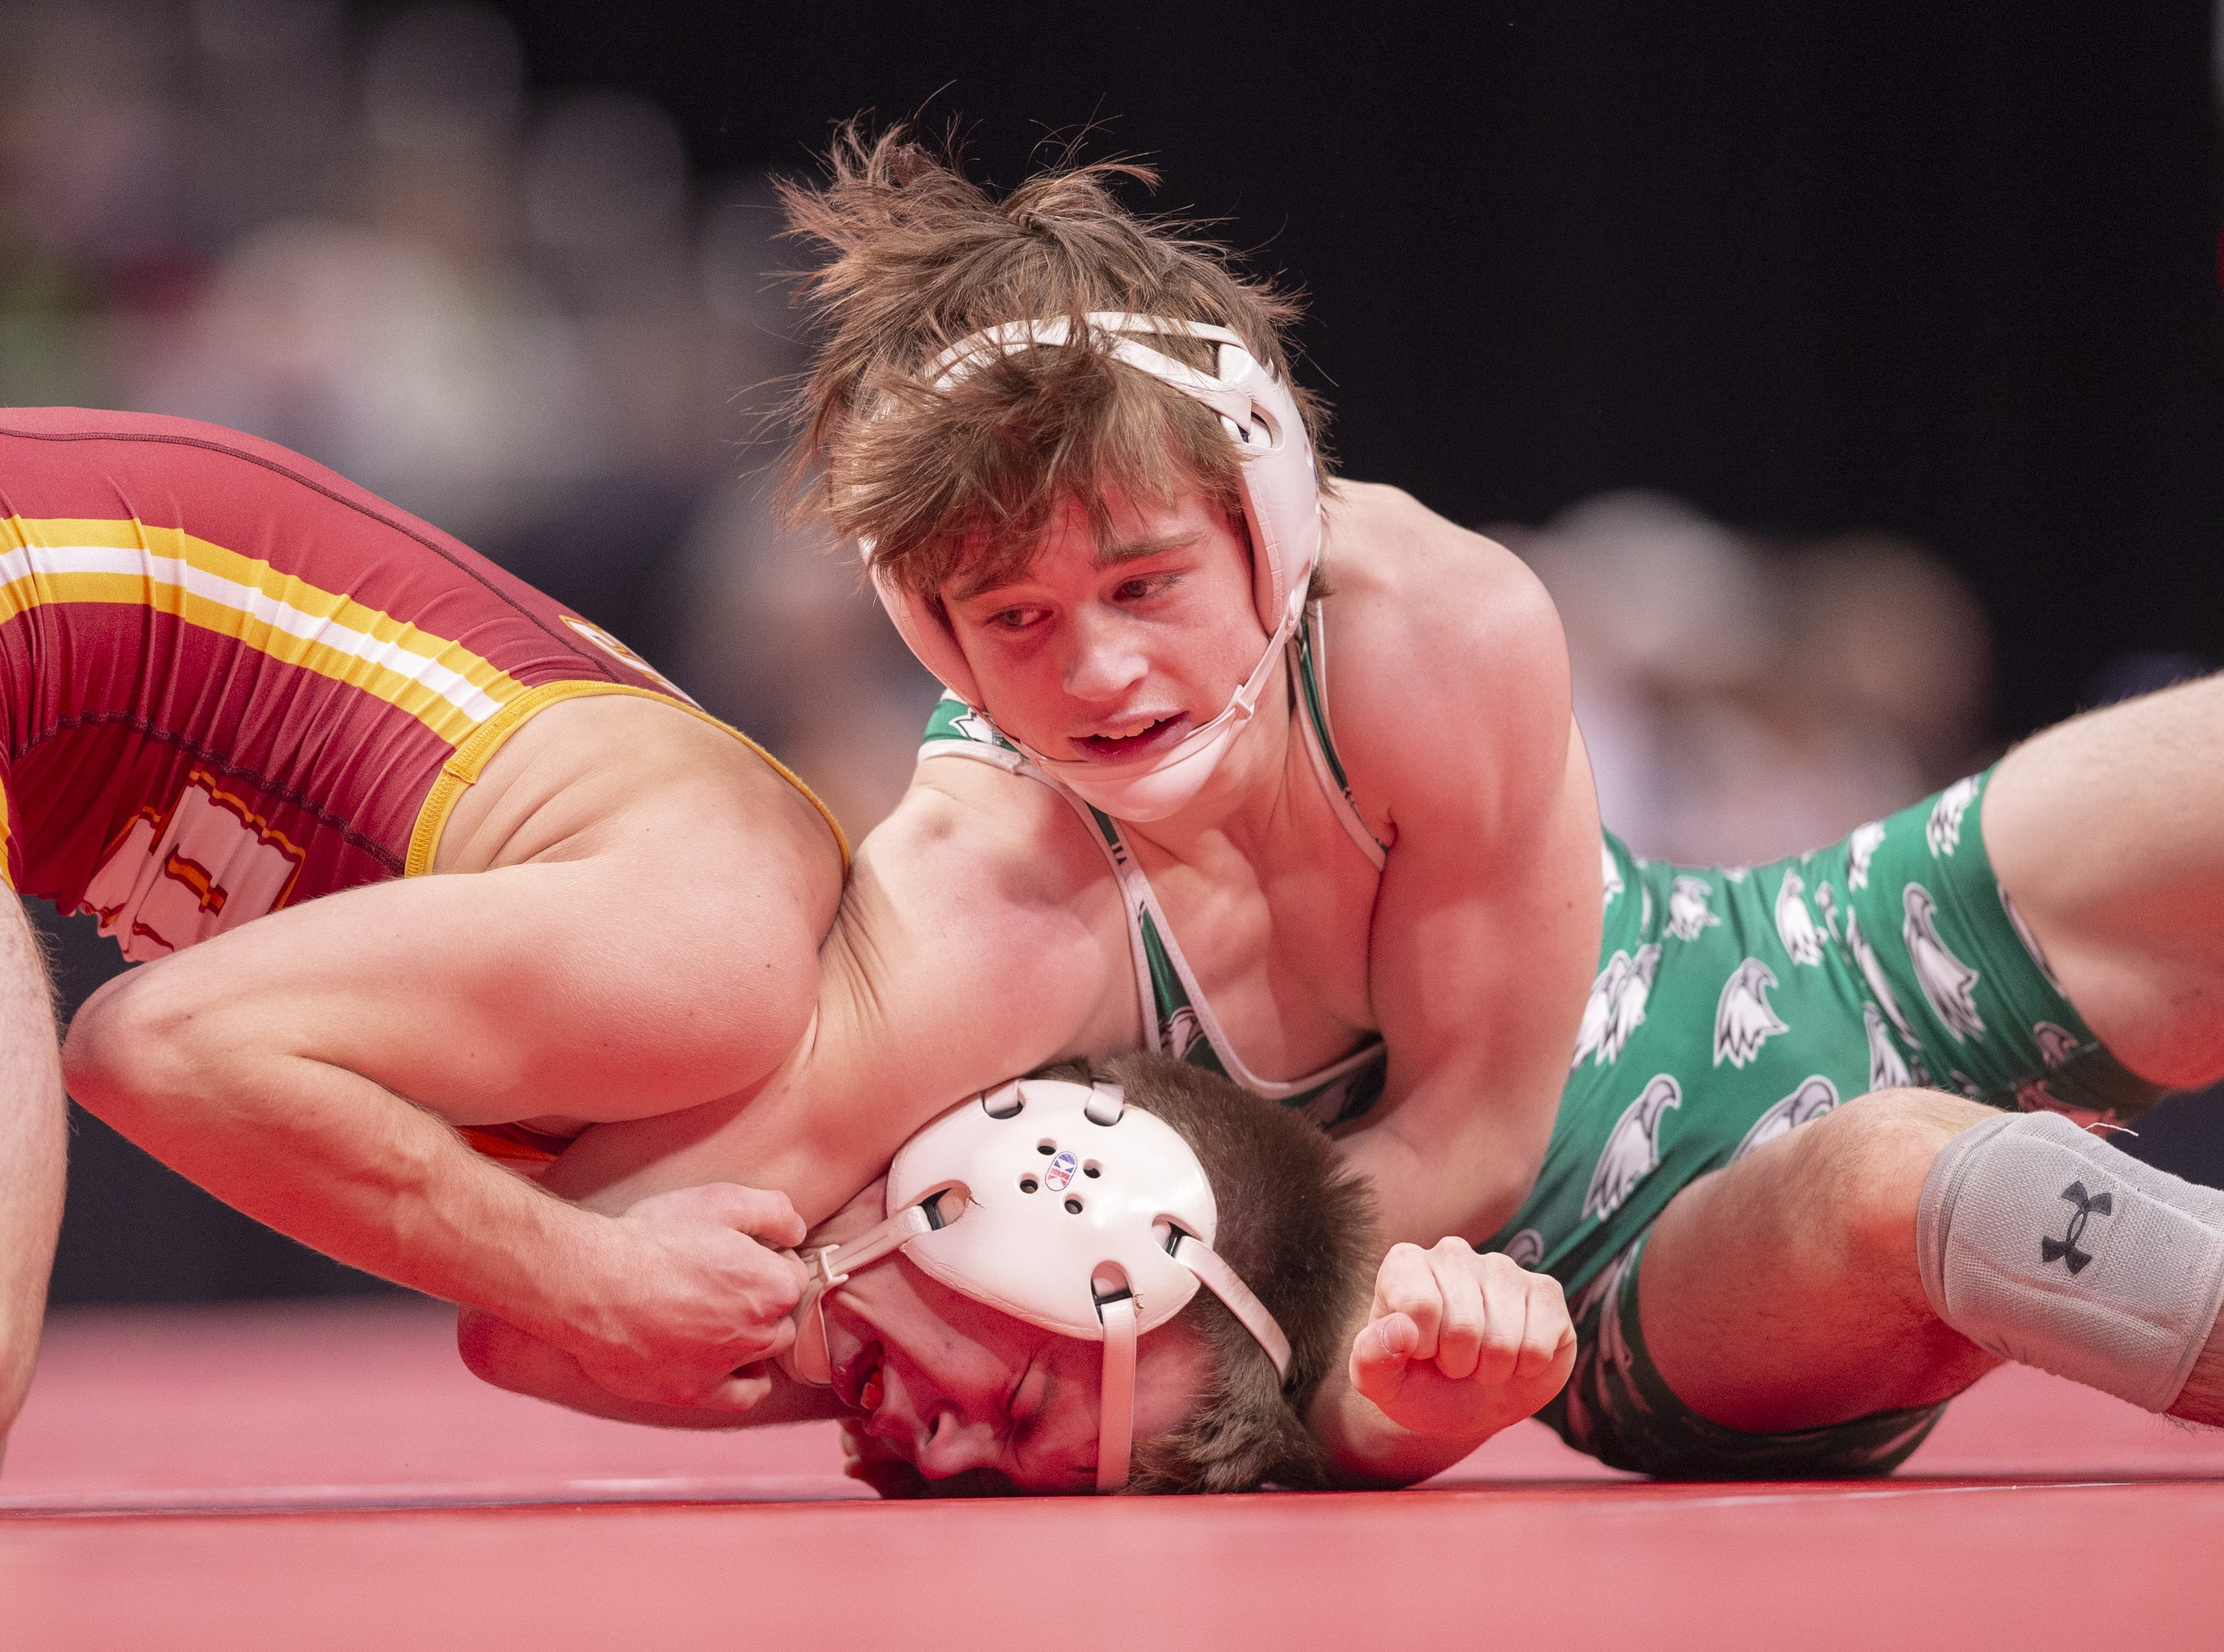 Zionsville High School wrestler Logan Wagner wrestles Evansville Mater Dei wrestler Kane Egli in the 126-pound weight class during the first day of competition in the 81st Annual IHSAA Wrestling State Finals at Bankers Life Fieldhouse in Indianapolis, Friday, Feb. 15, 2019.